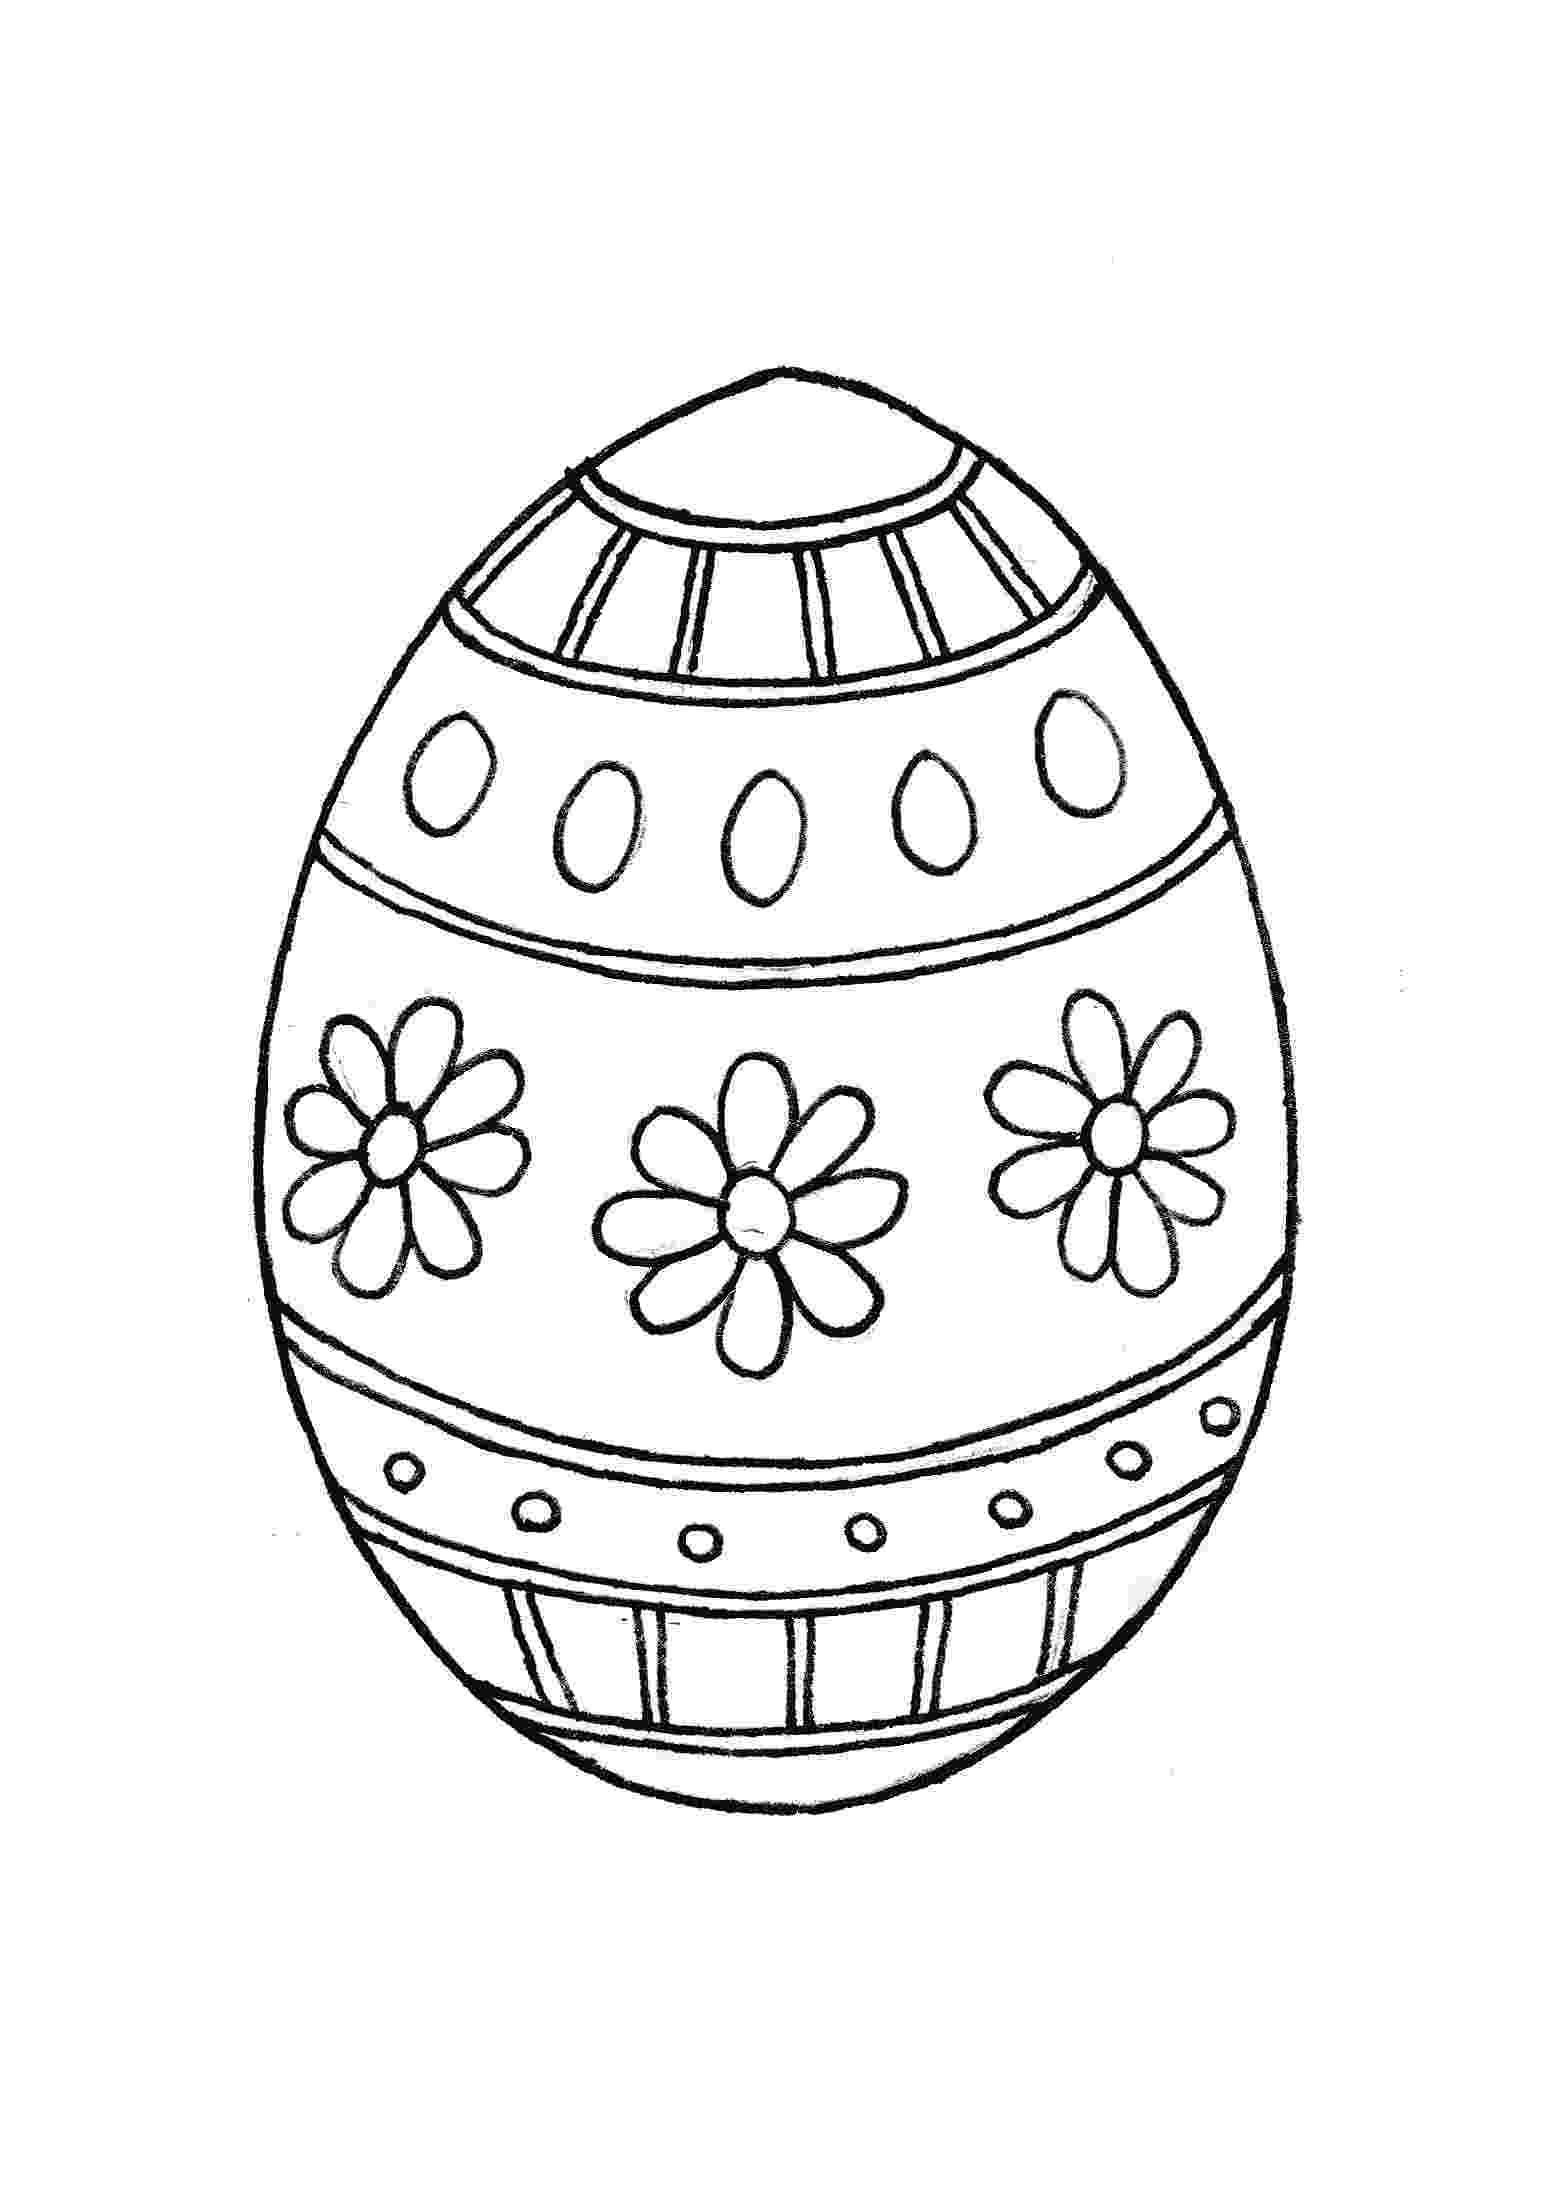 easter egg patterns pin by muse printables on printable patterns at easter patterns egg